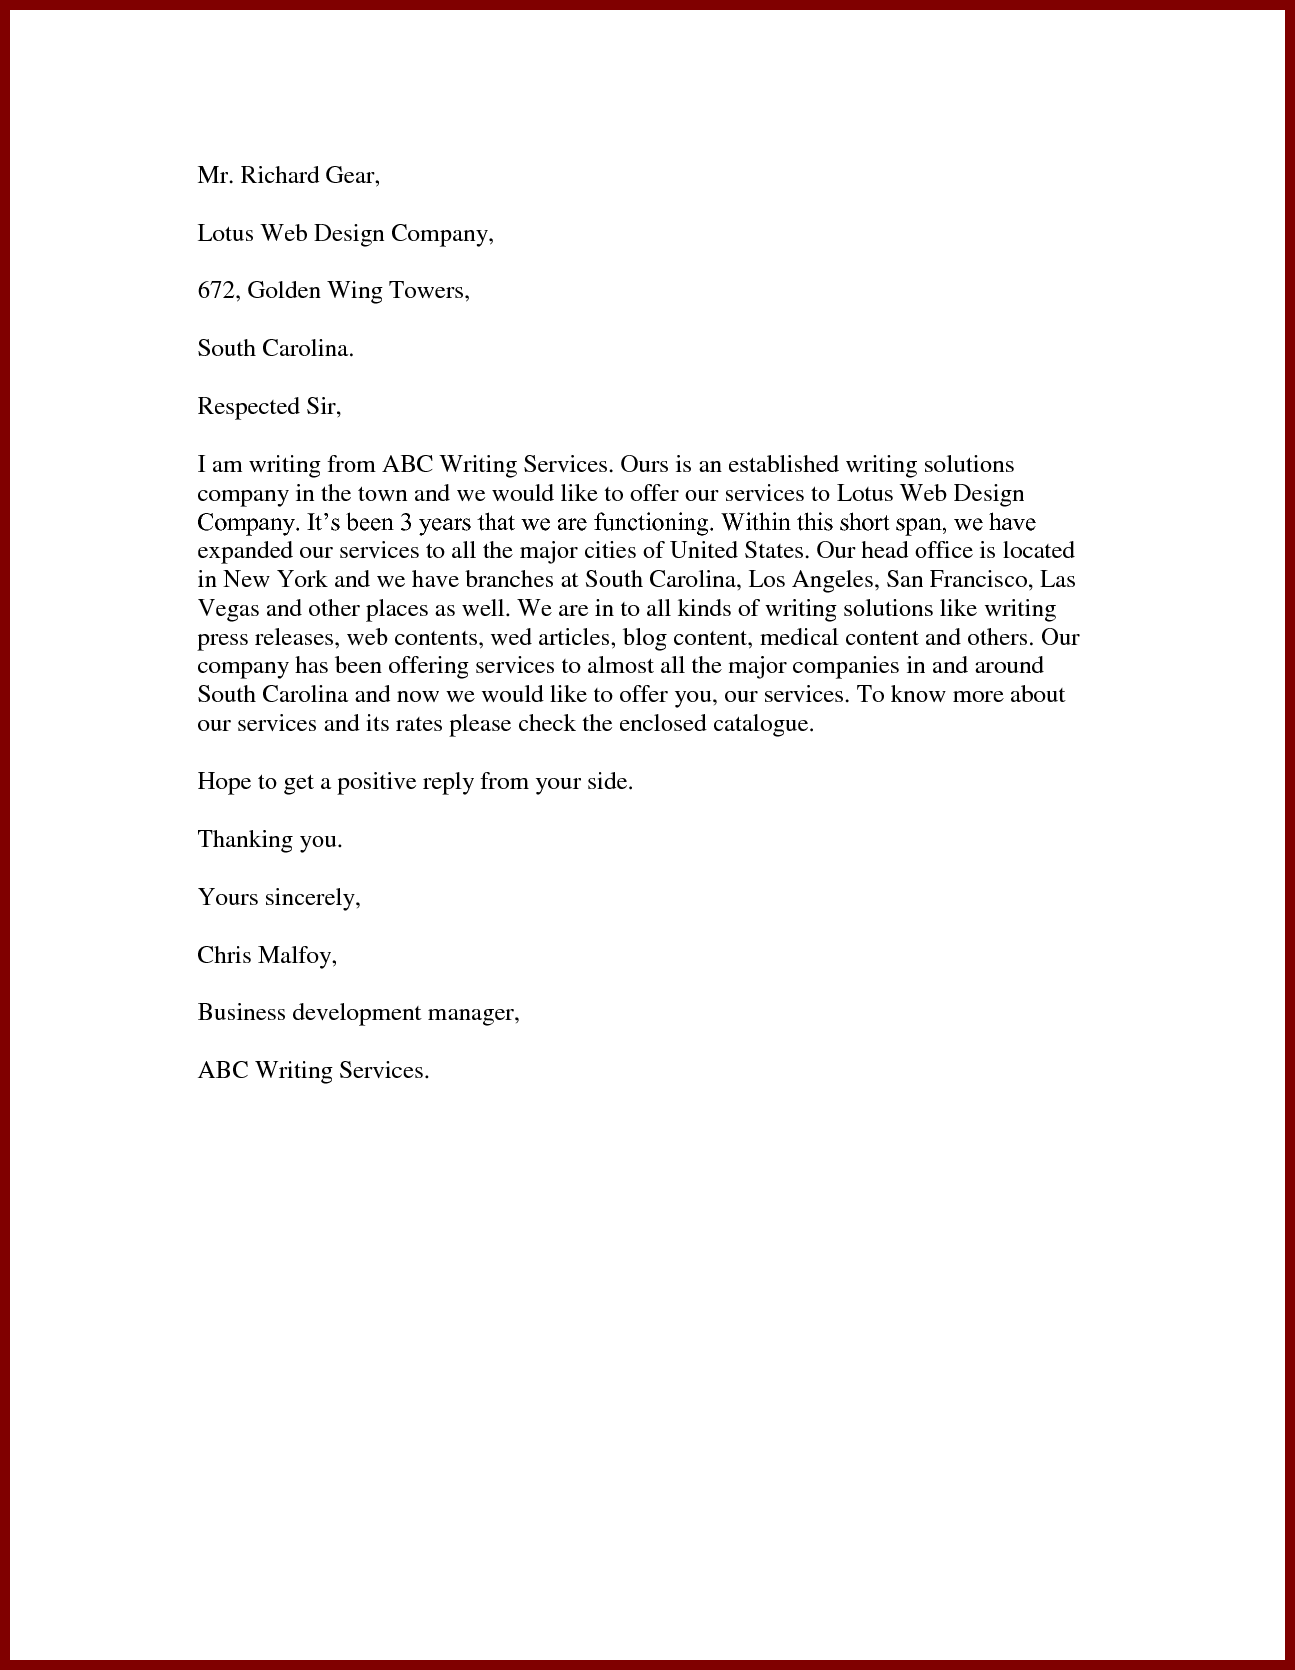 business service offer letter sample Boat.jeremyeaton.co